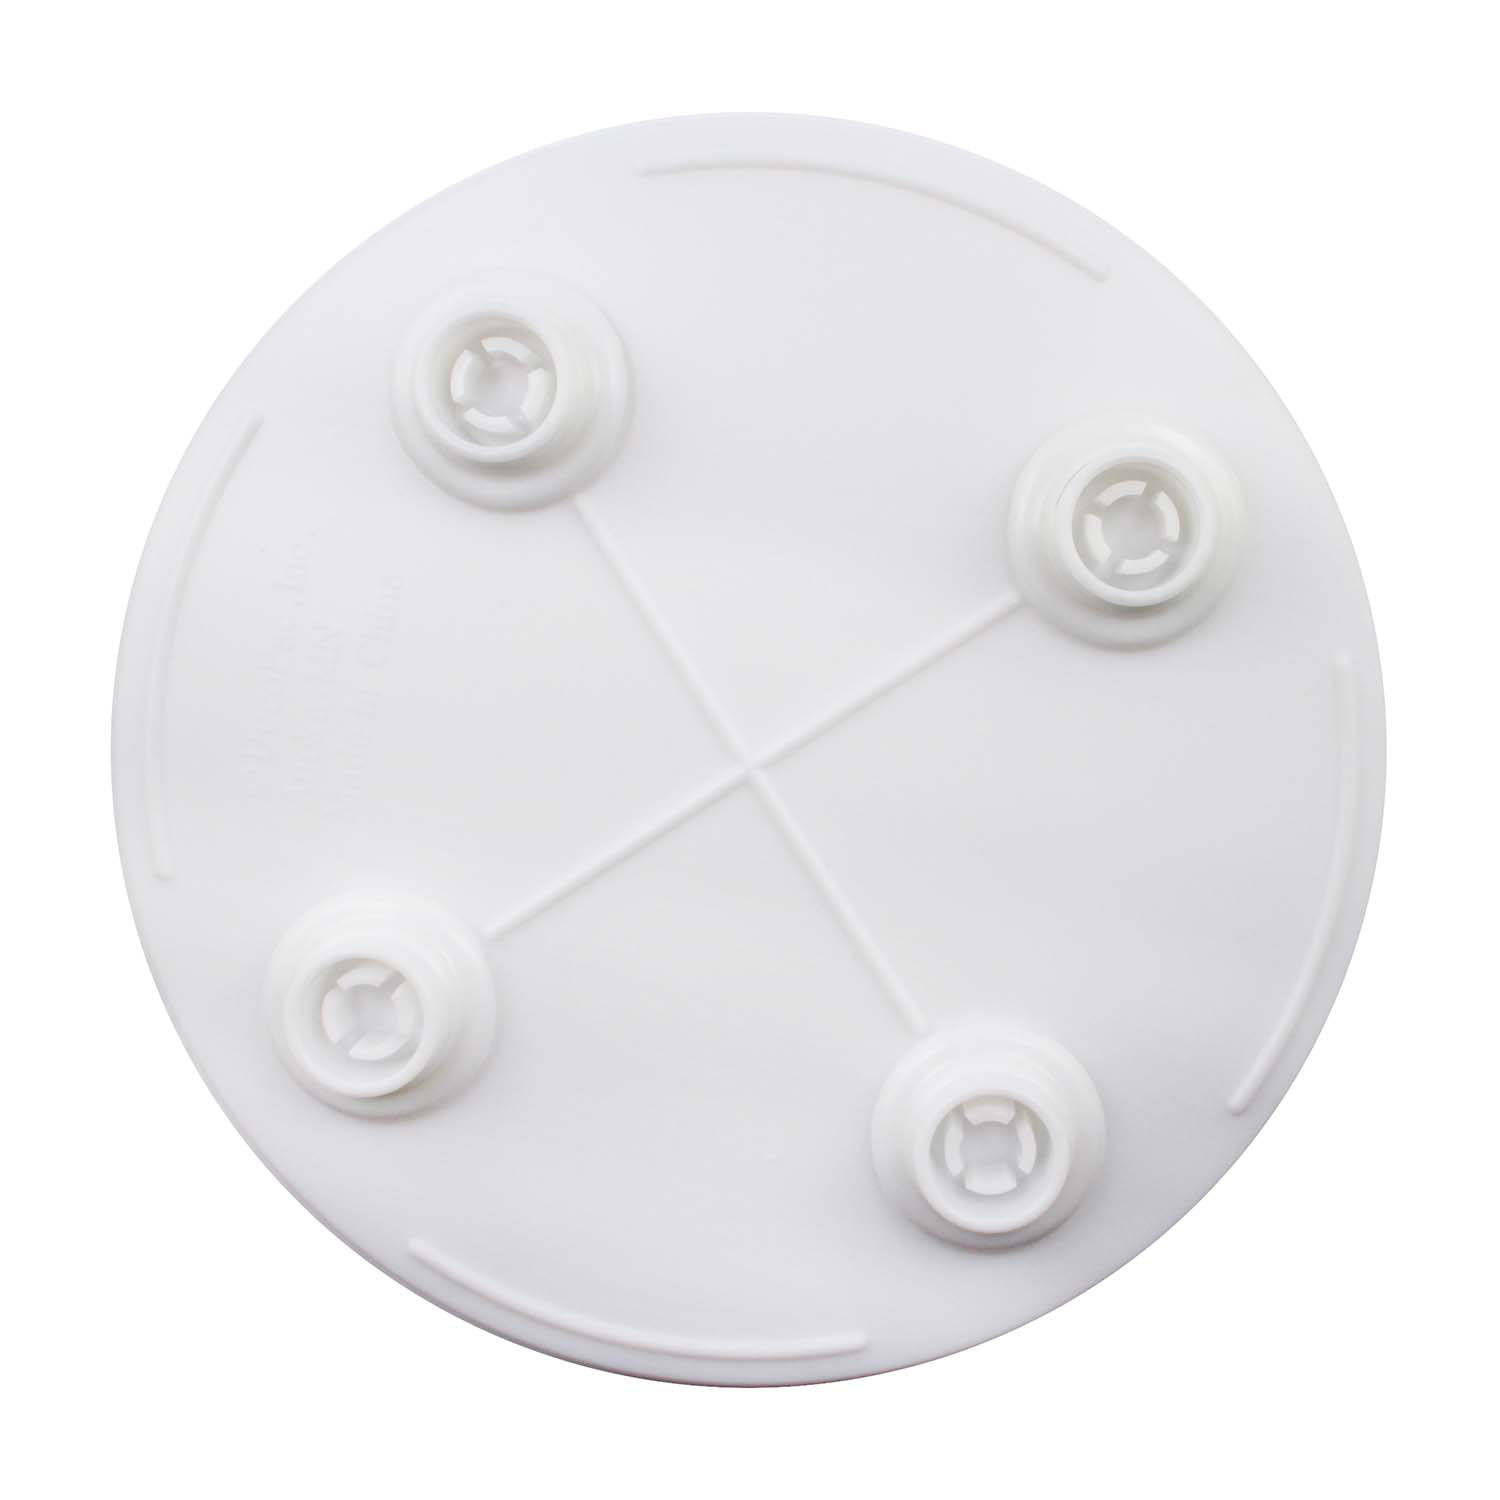 Bakery Craft Round and Square Plates with Grecian Pillars